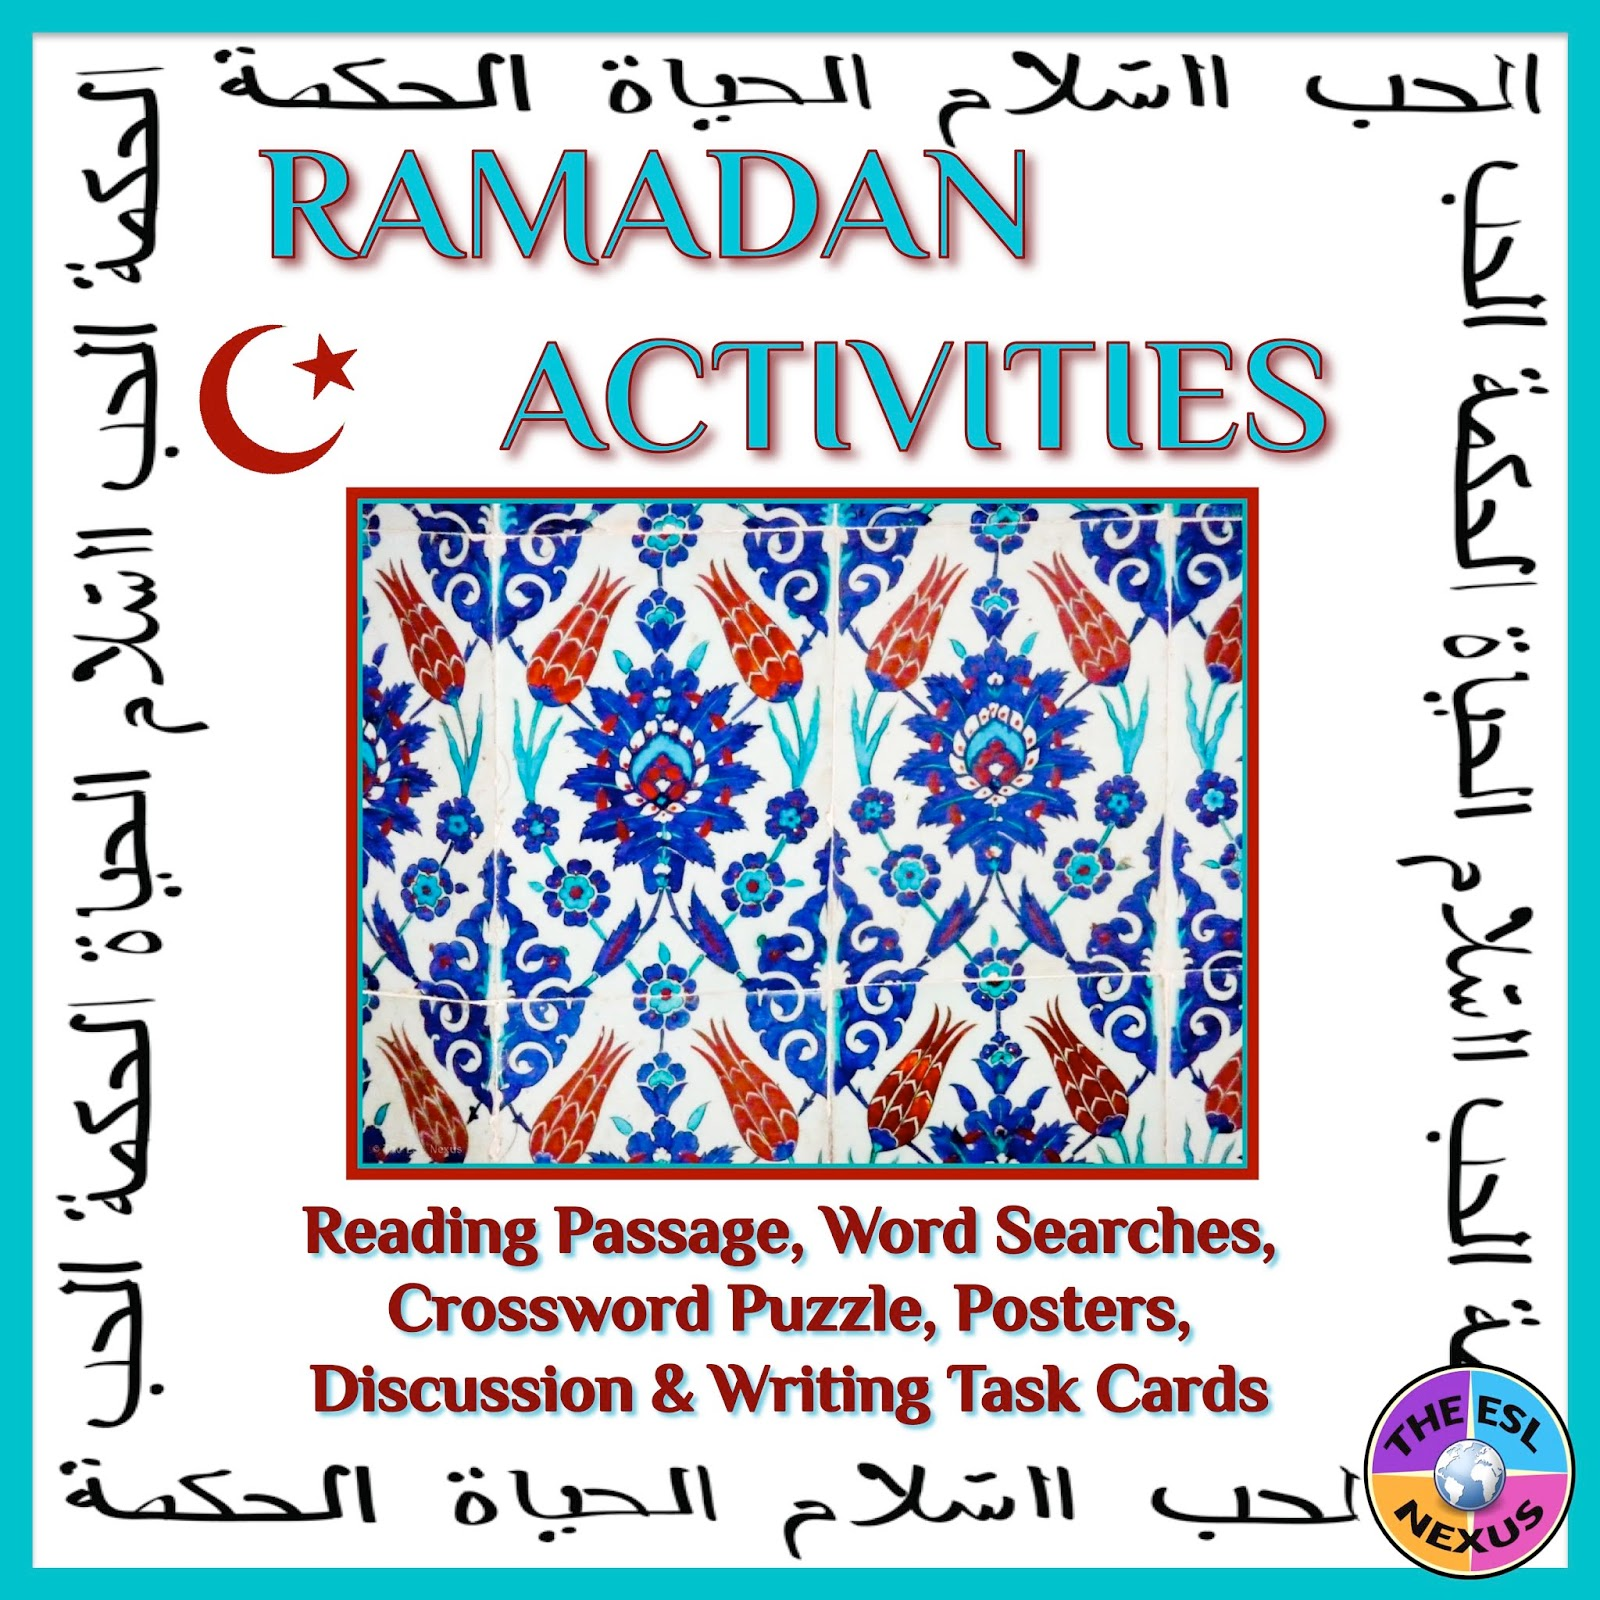 Use this resource to teach students about Ramadan | The ESL Nexus